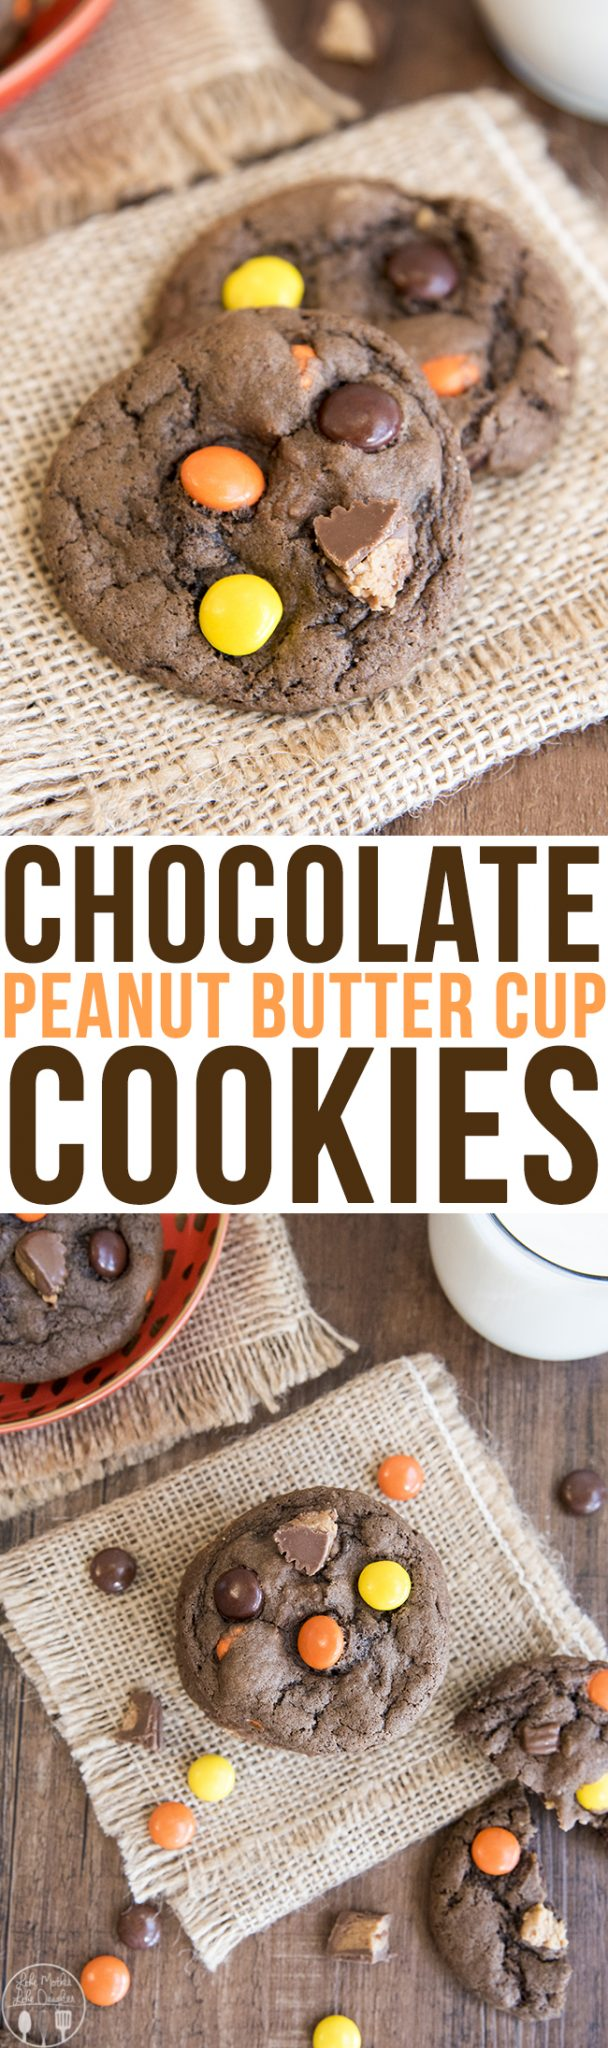 These soft and chewy chocolate peanut butter cup cookies are stuffed full of Reese's pieces and peanut butter cups. The perfect cookie for peanut butter cup lovers!